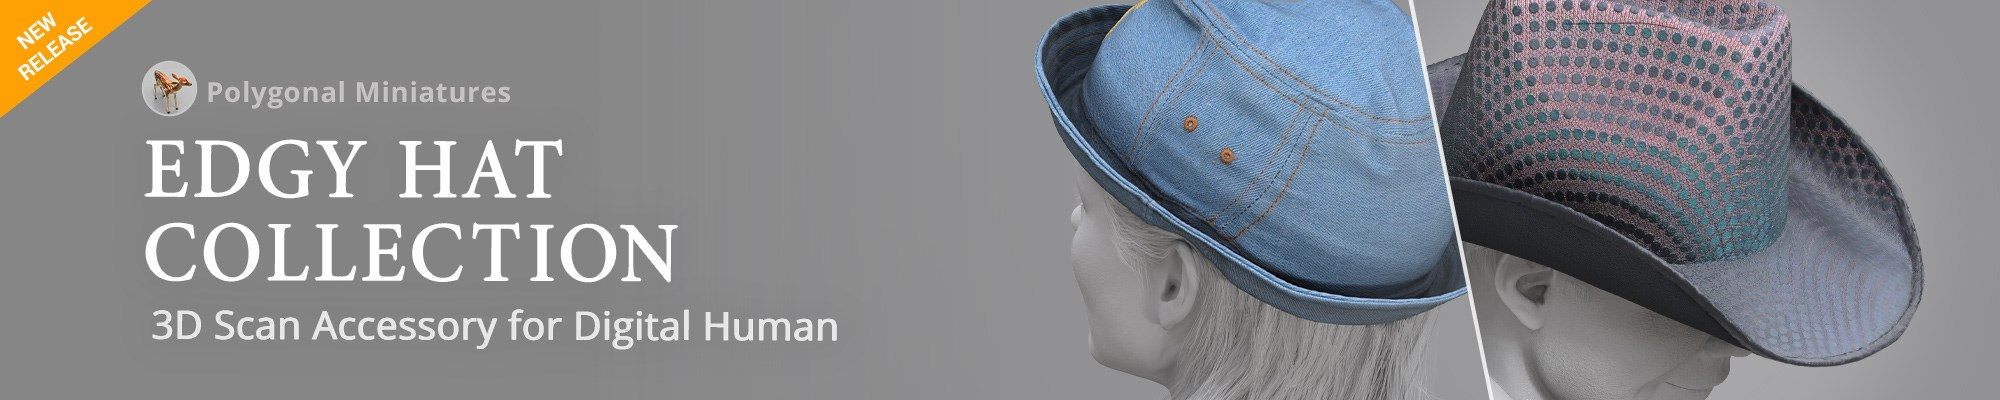 Edgy Hat Collection - 3D Scan Accessory for Digital Human